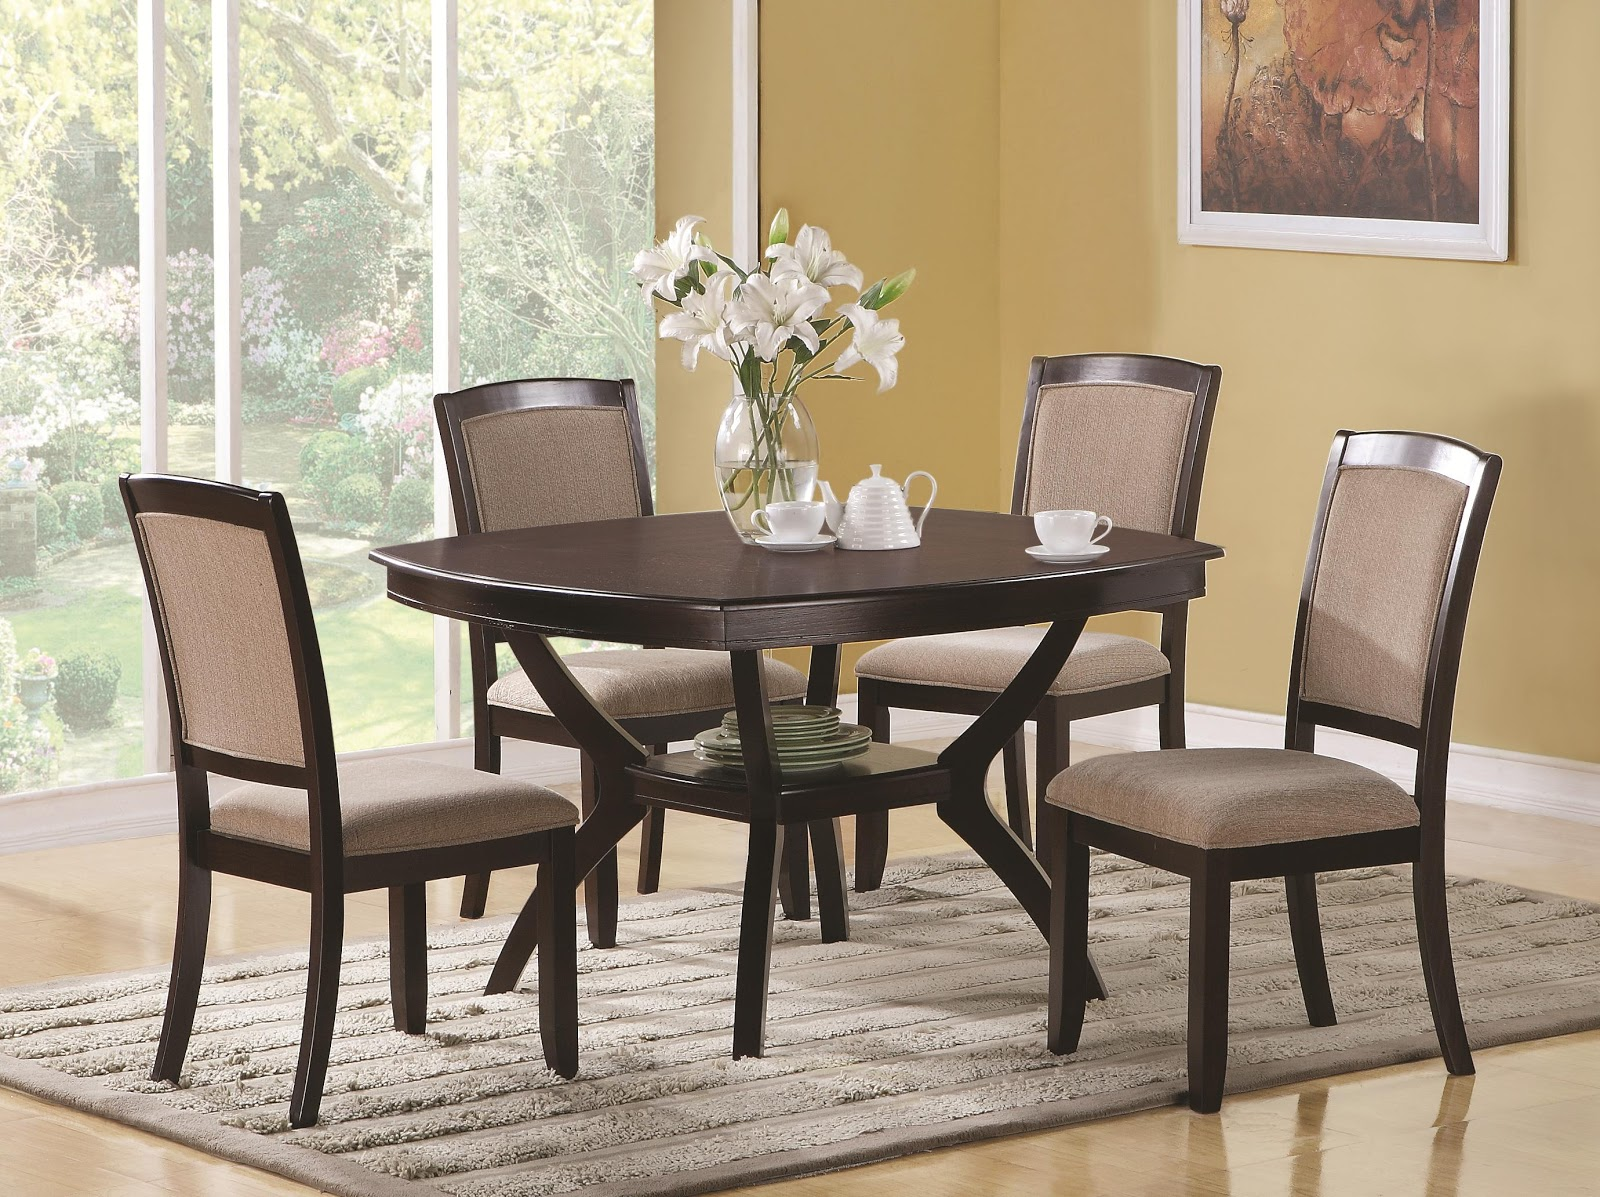 round dining room sets dining room unique dinette canadel ny bermex ny 631 742 1351. Black Bedroom Furniture Sets. Home Design Ideas